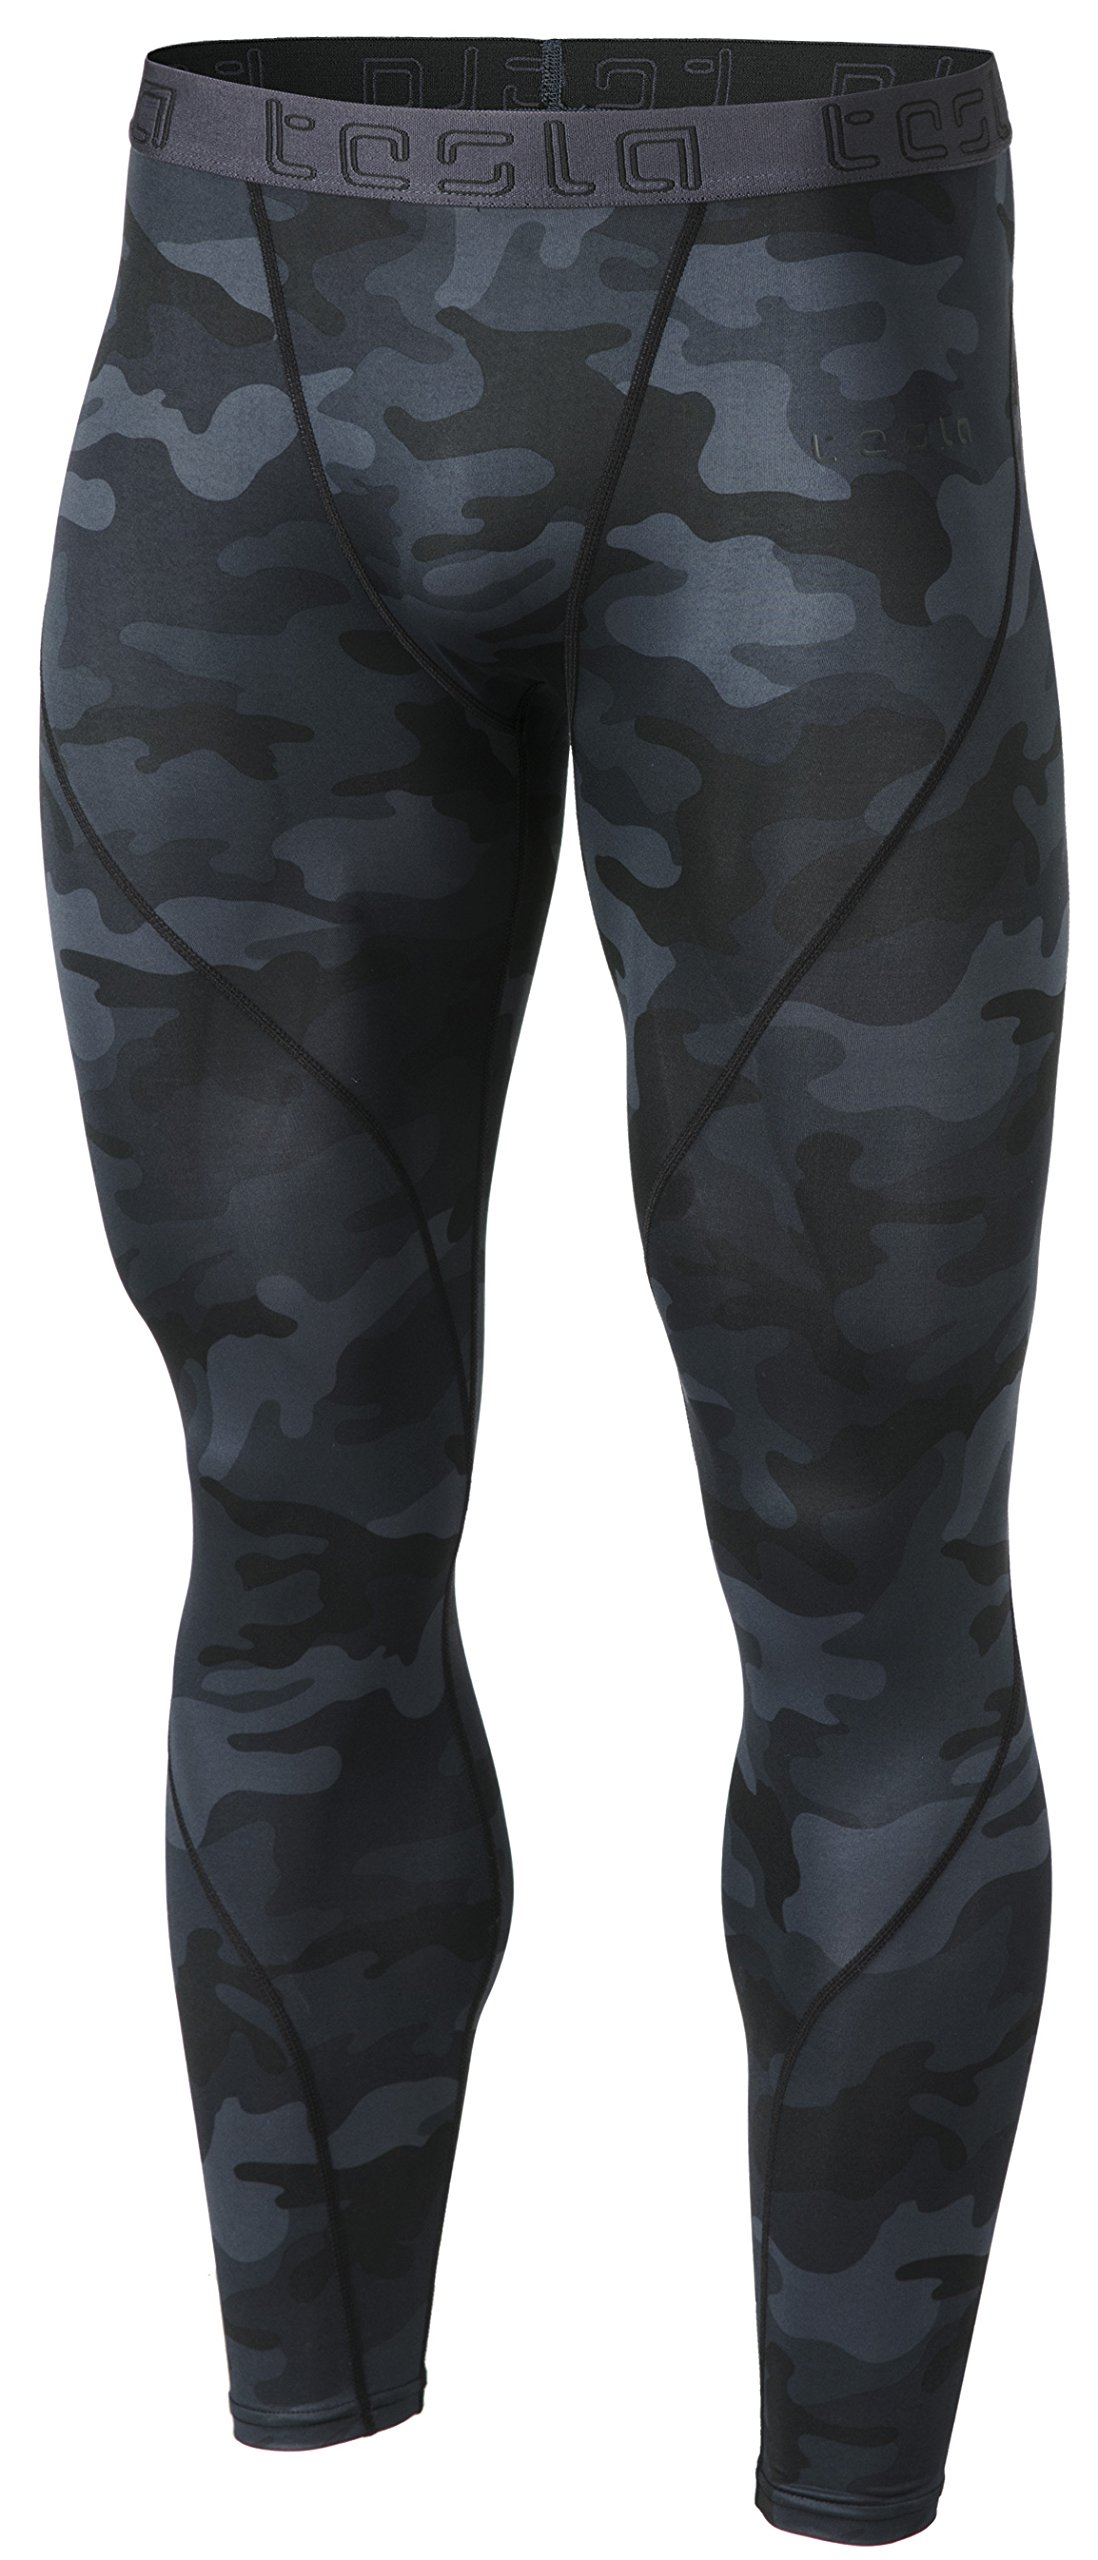 TSLA Men's Compression Pants Running Baselayer Cool Dry Sports Tights, Athletic(mup19) - Camo Black, X-Large by TSLA